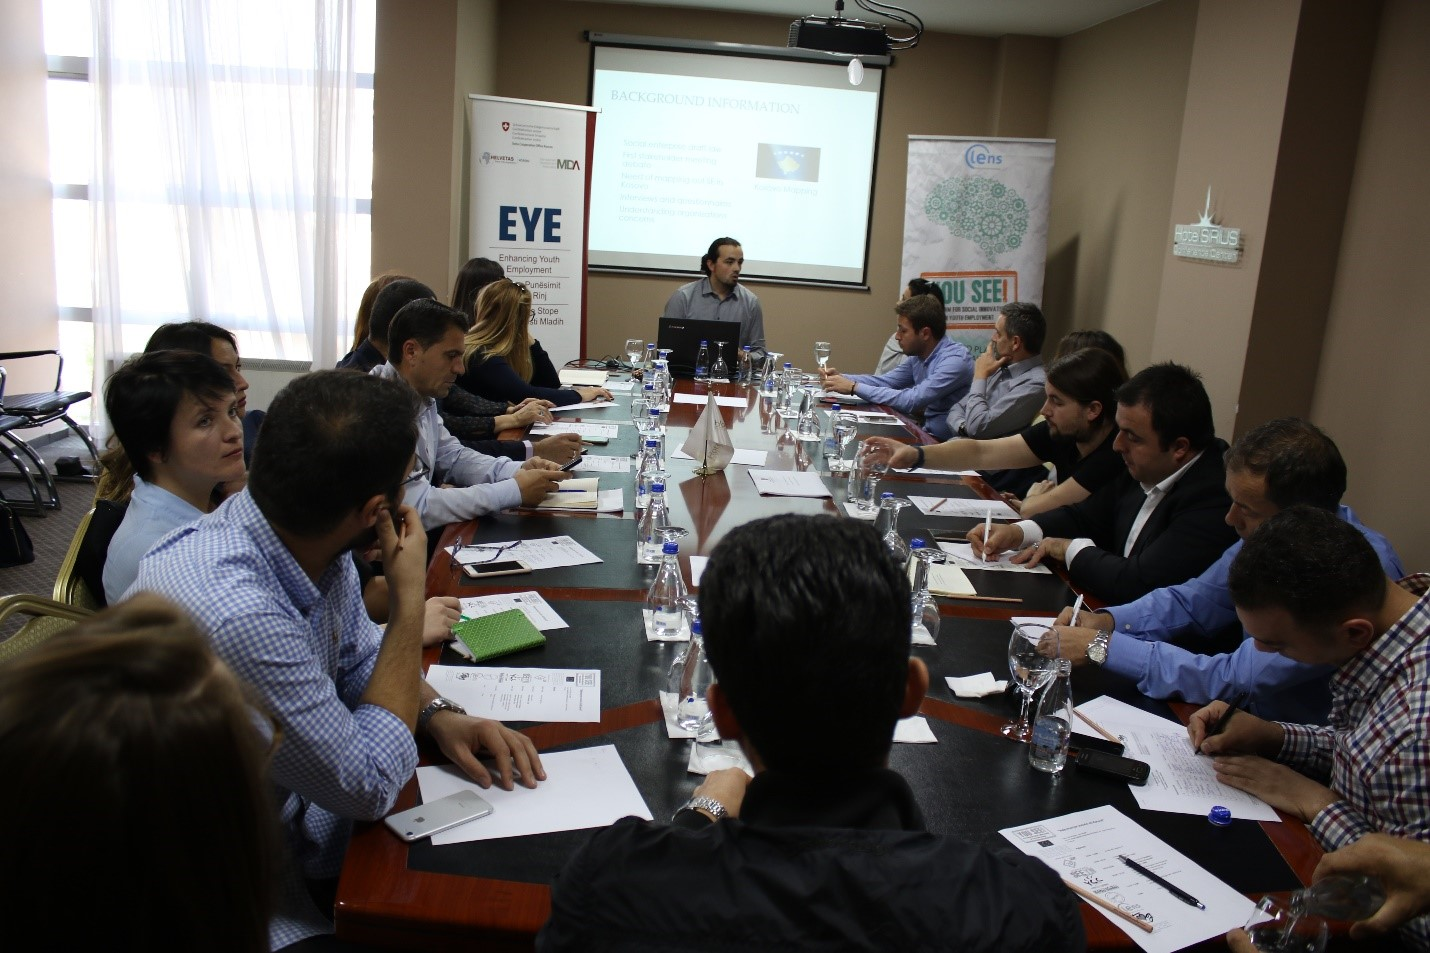 Stakeholder meeting to discuss about social enterprise trends in Kosovo